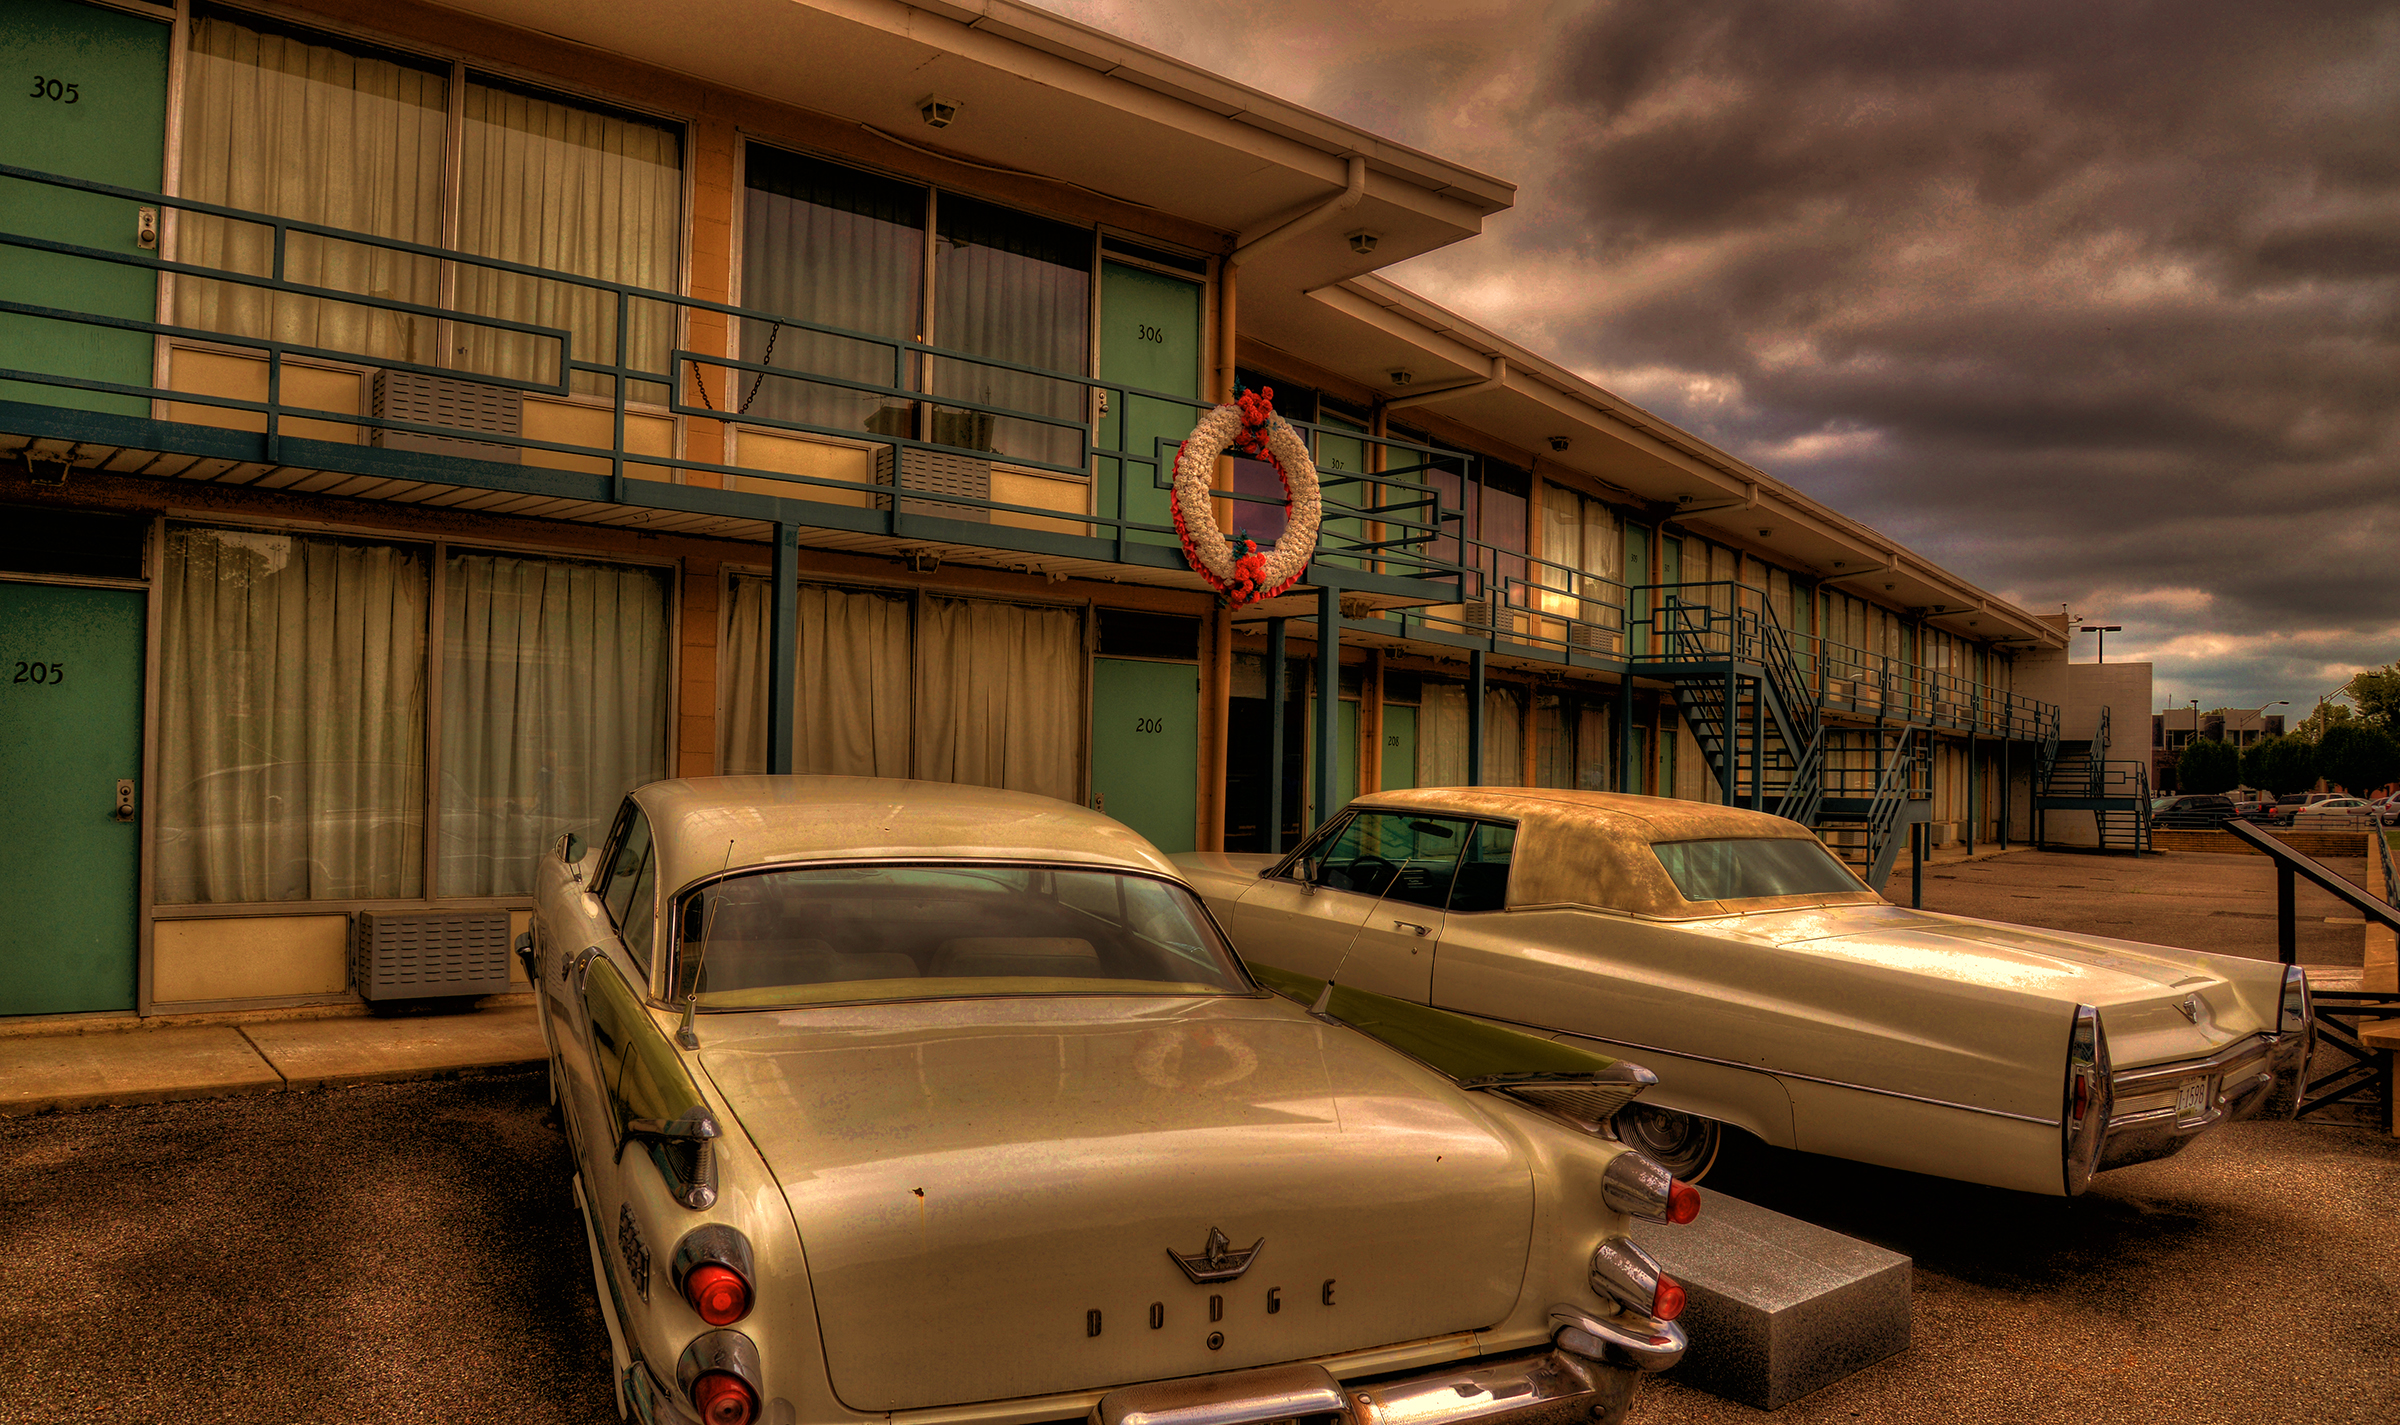 The Lorraine Motel...National Civil Rights Museum